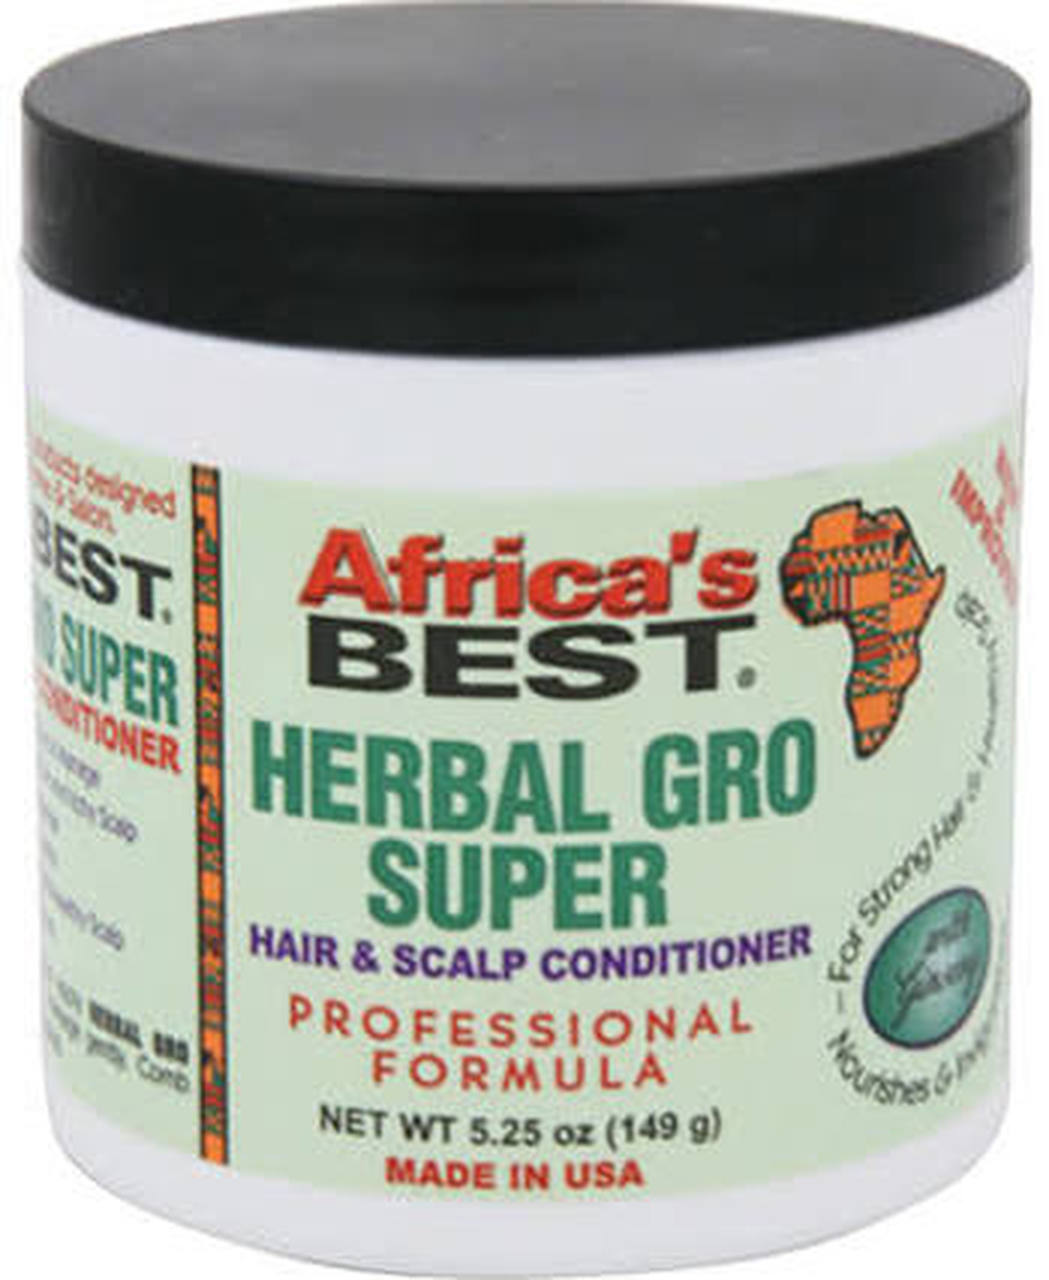 Africa's Best Herbal Super Gro Hair and Scalp Conditioner 5.25oz